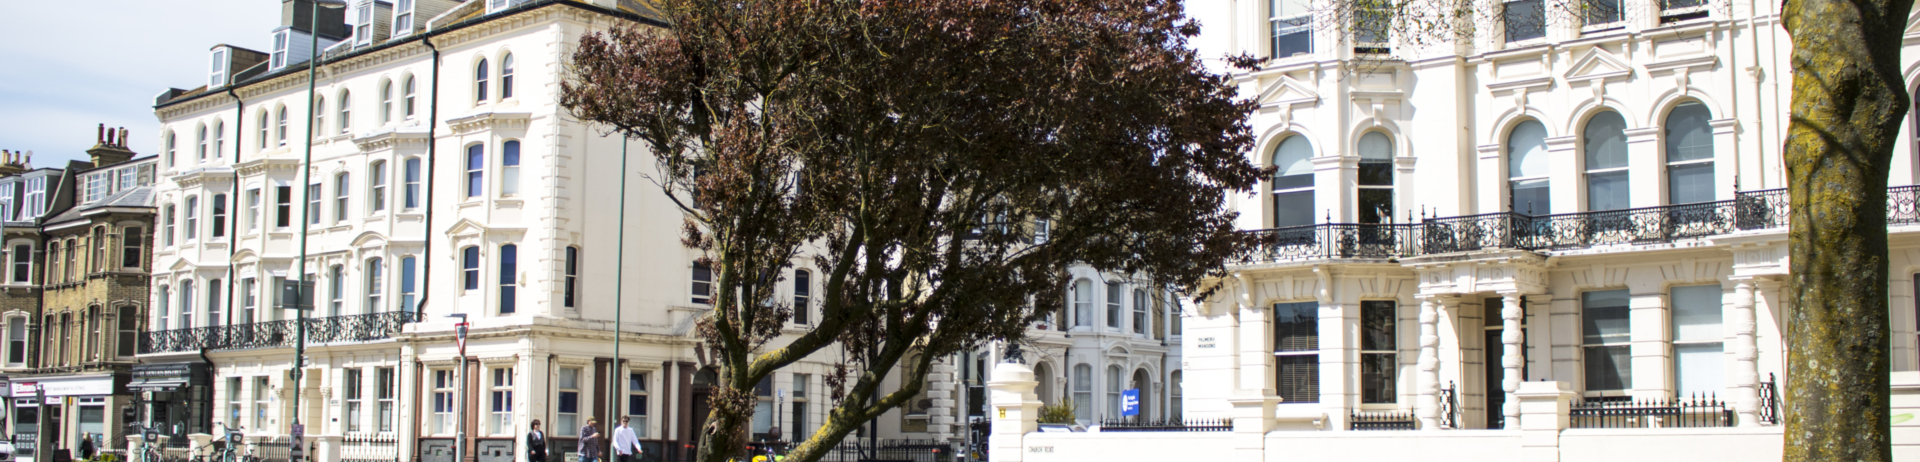 ELC Brighton Main School in Palmeira Square Brighton